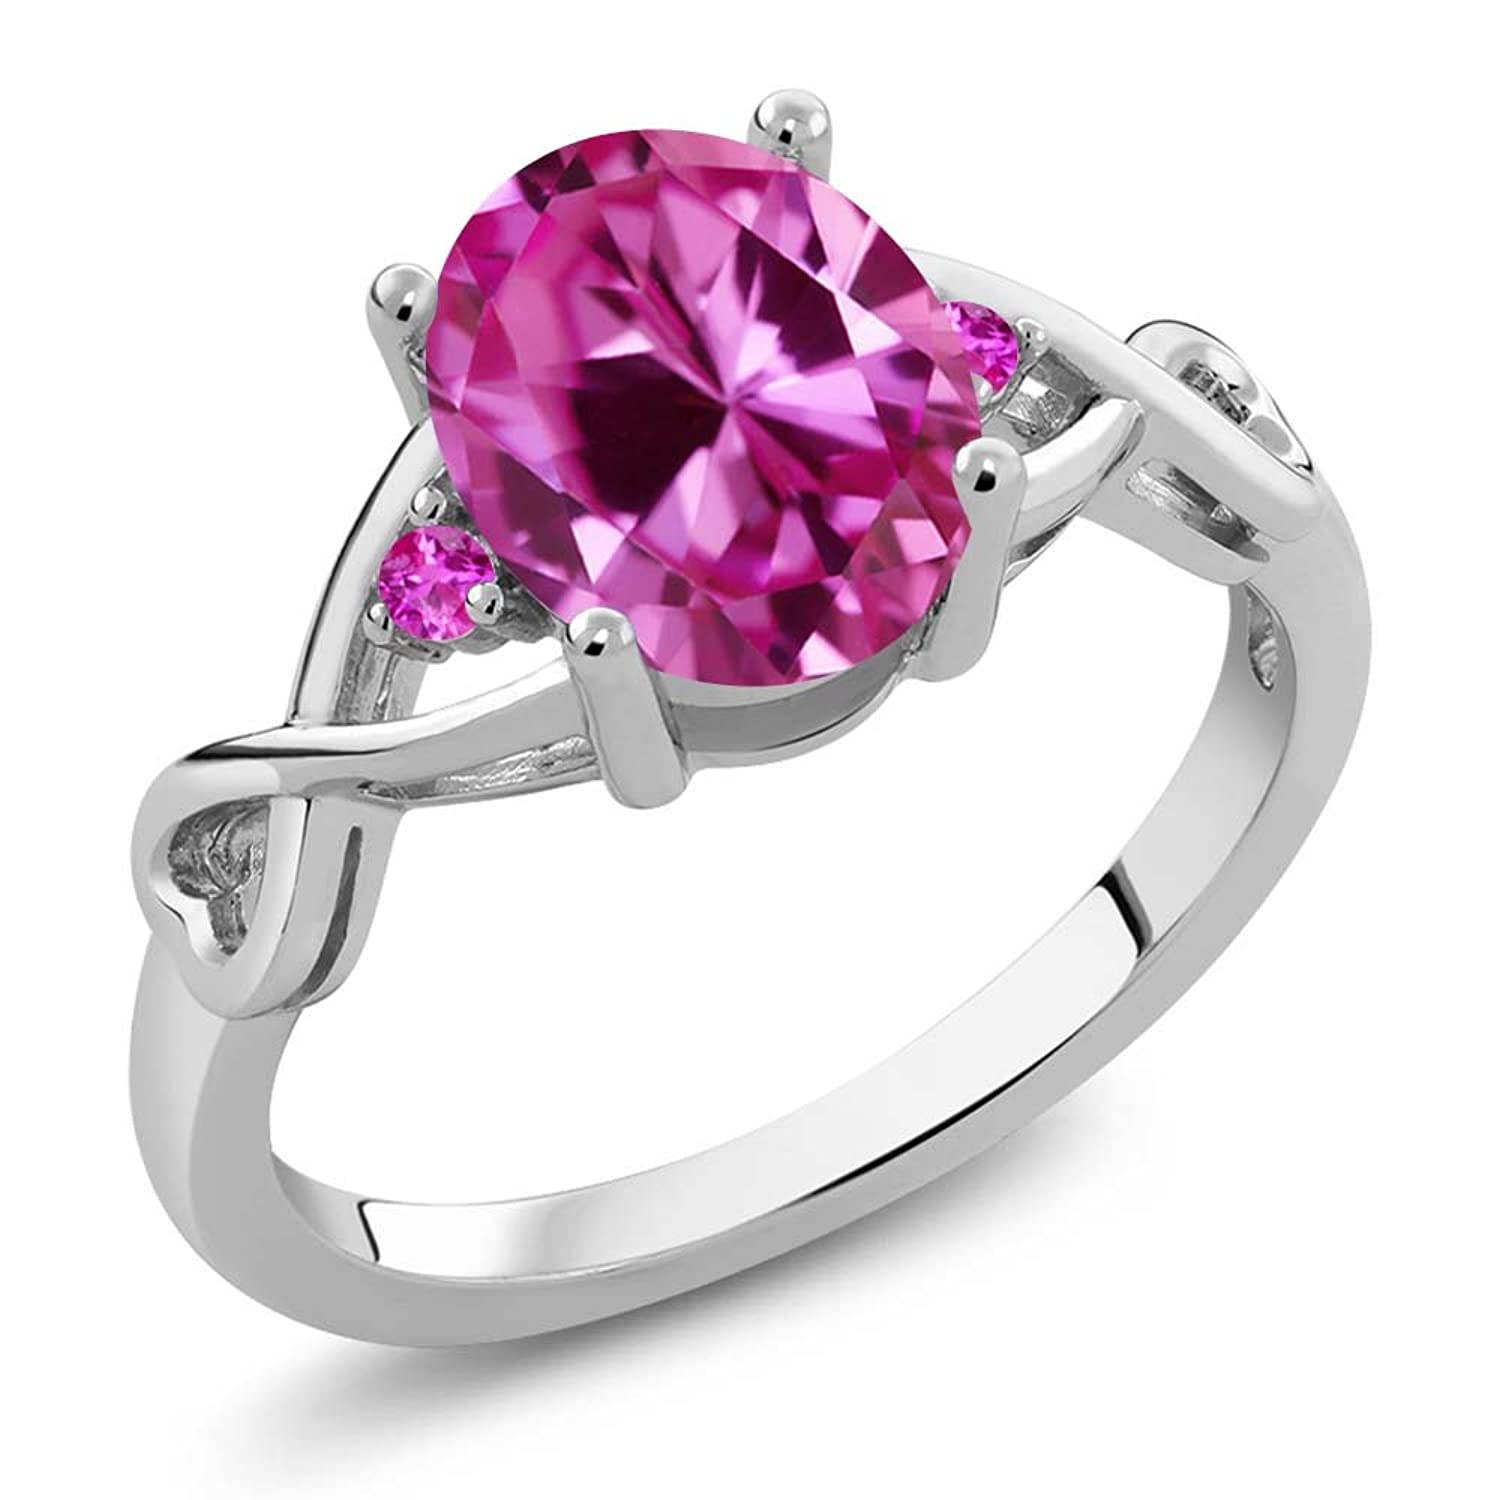 2.44 Ct Oval Pink Created Sapphire Pink Sapphire 925 Sterling Silver Ring